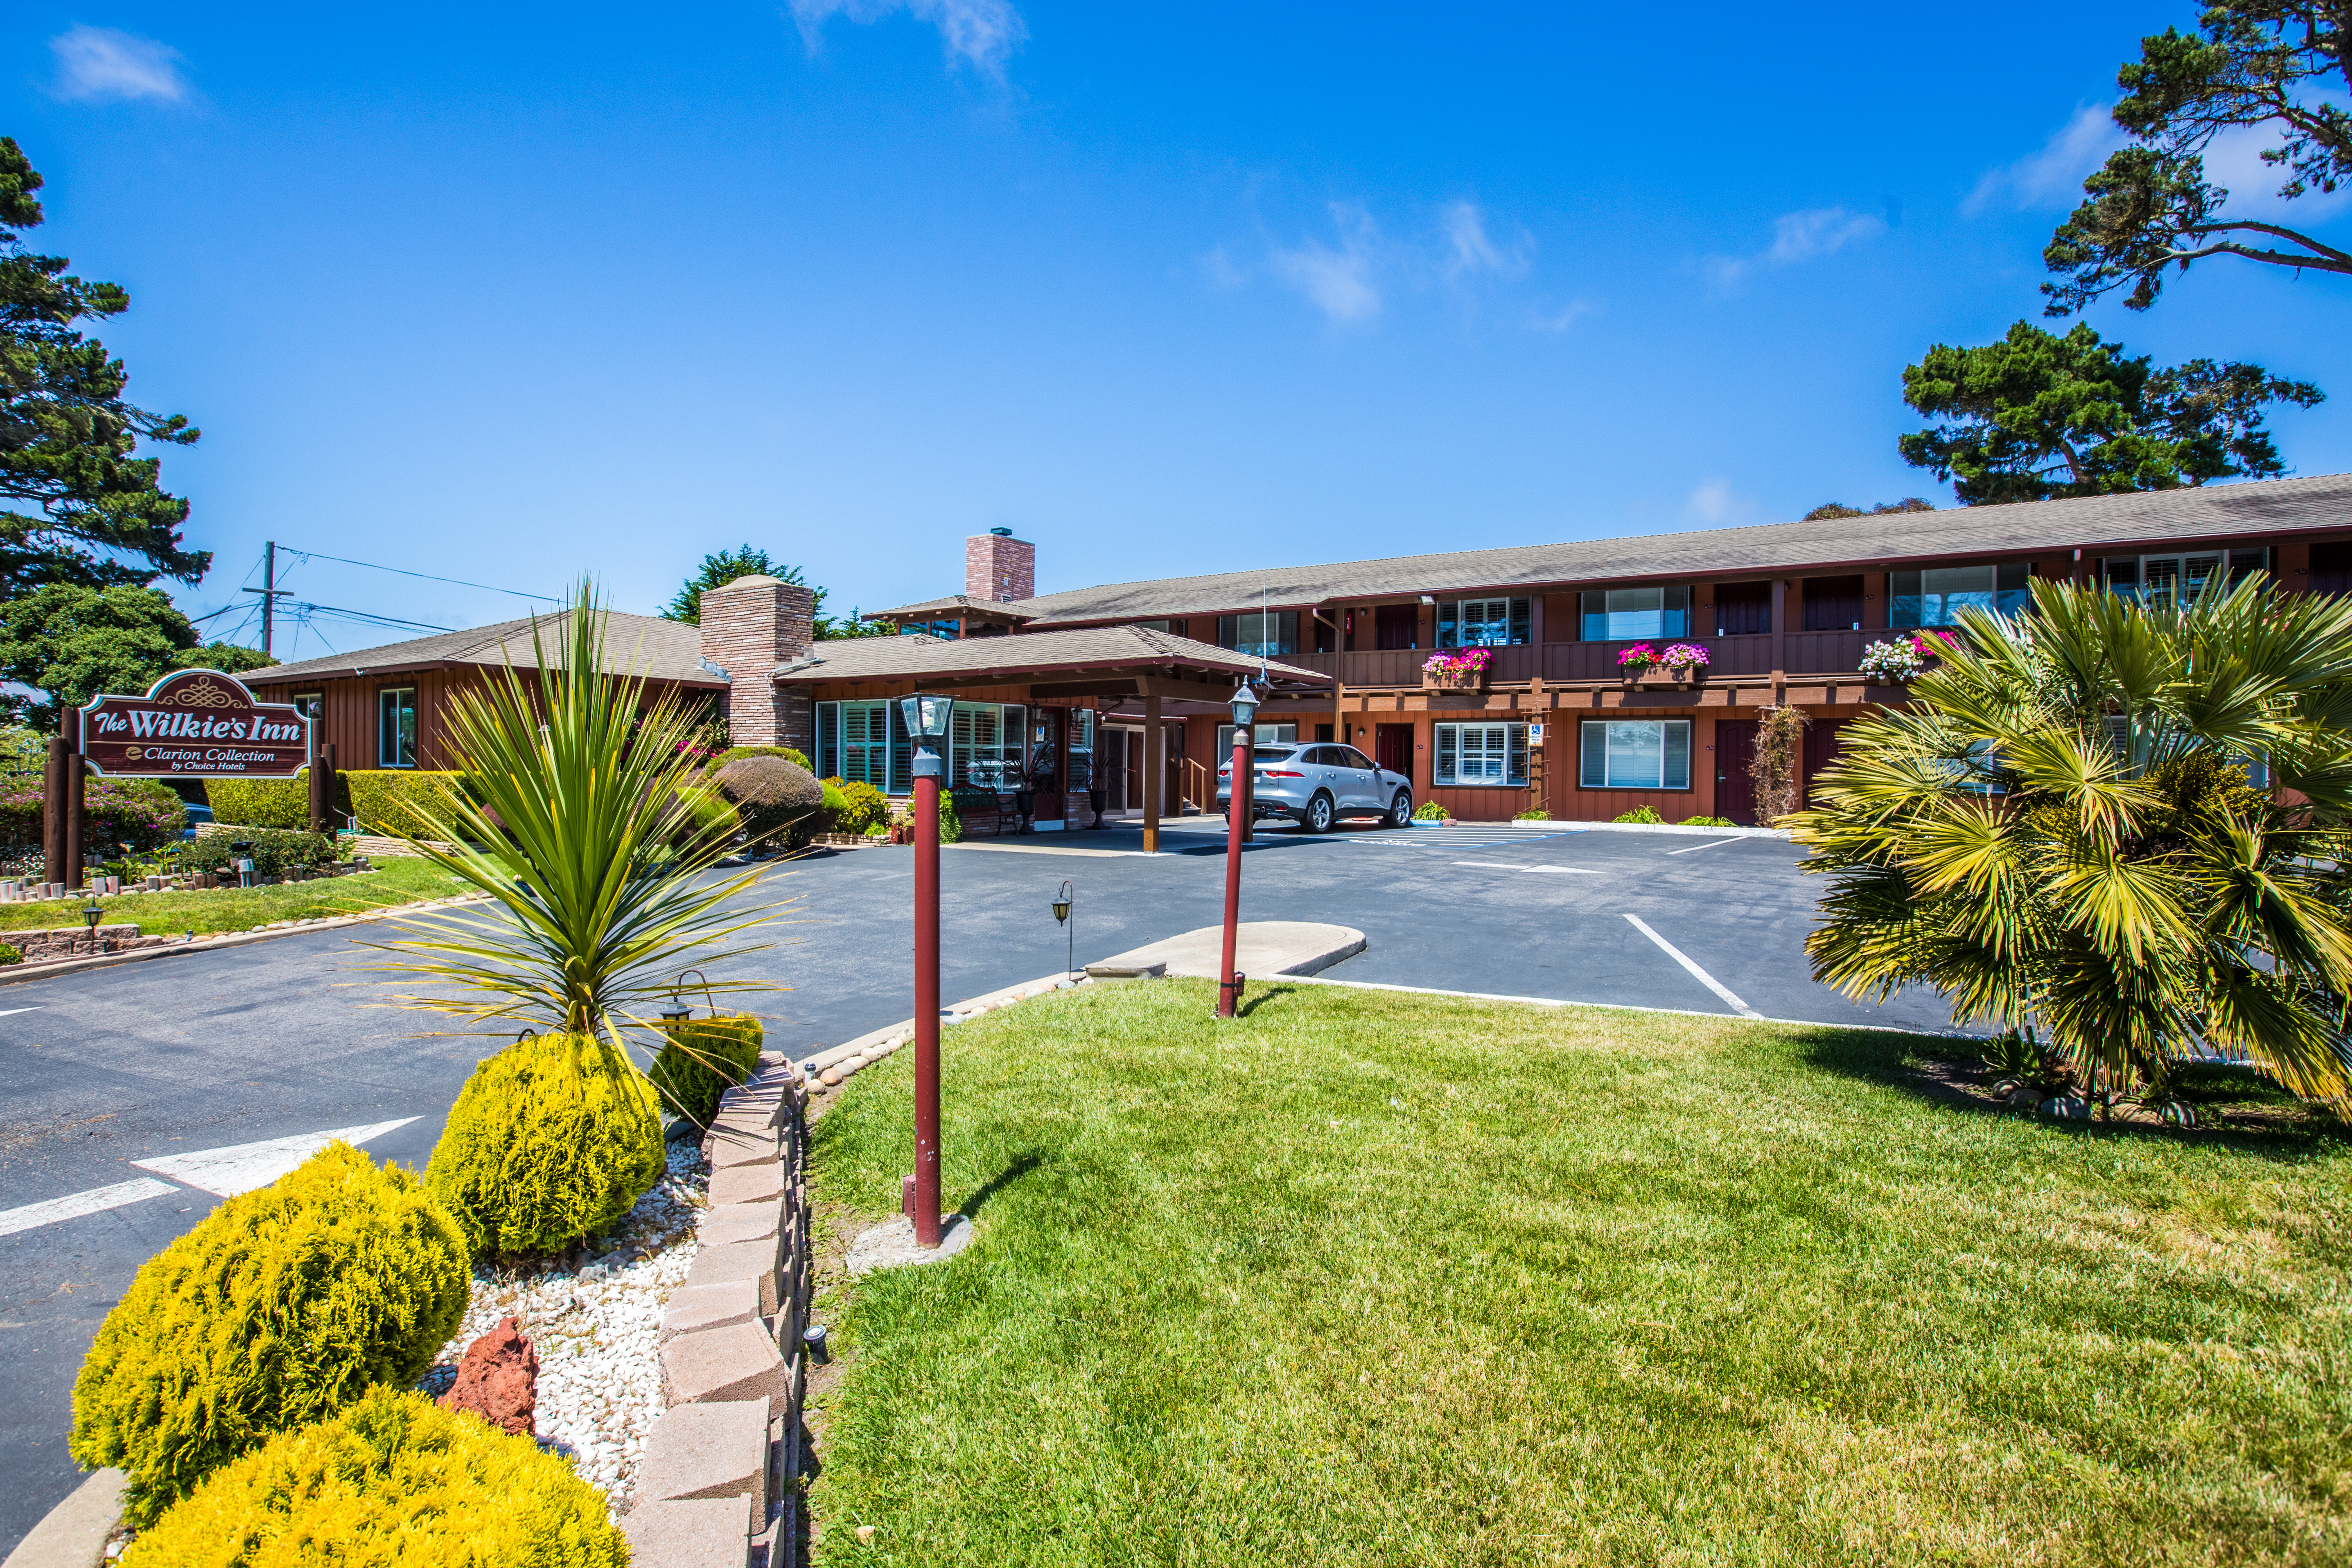 The Wilkies Inn, by Clarion Collection reviews | 1038 Lighthouse Ave - Pacific Grove CA